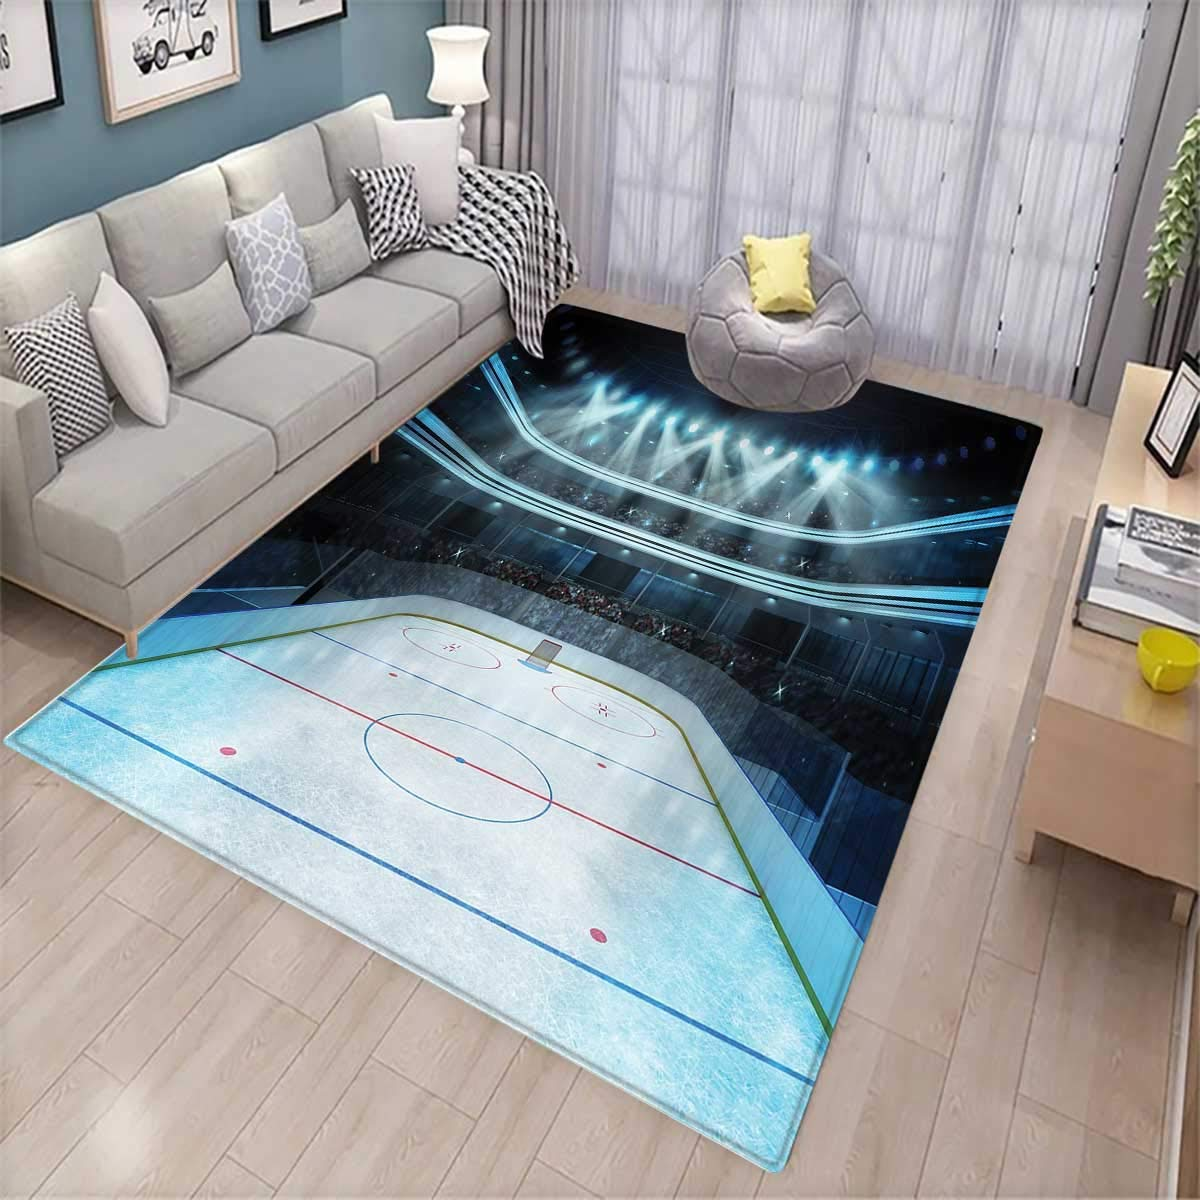 Hockey Extra Large Area Rug Photo of a Sports Arena Full of People Fans Audience Tournament Championship Match Bath Mat for tub Multicolor